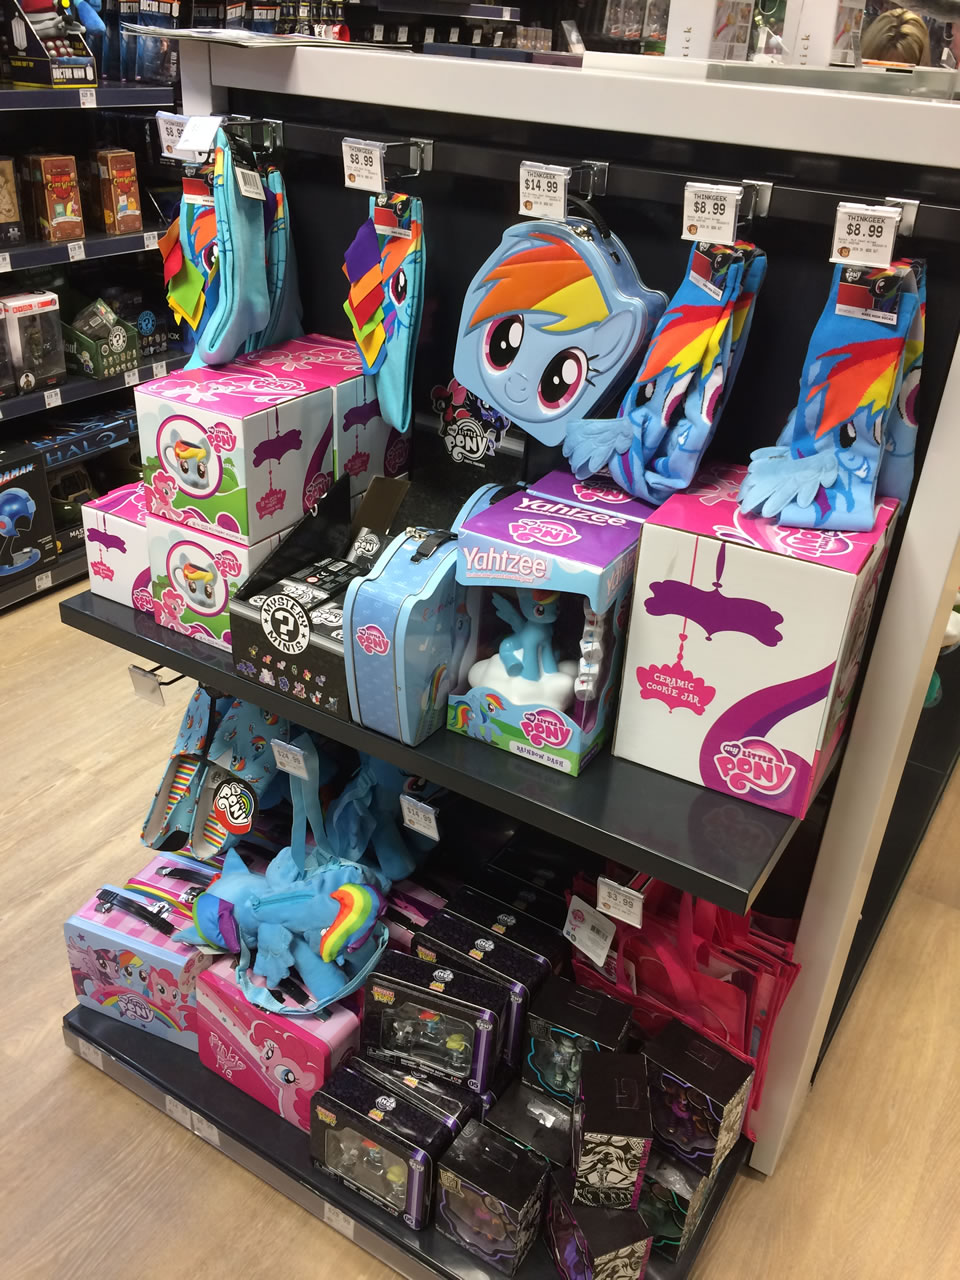 59 thinkgeek store - brony shelf